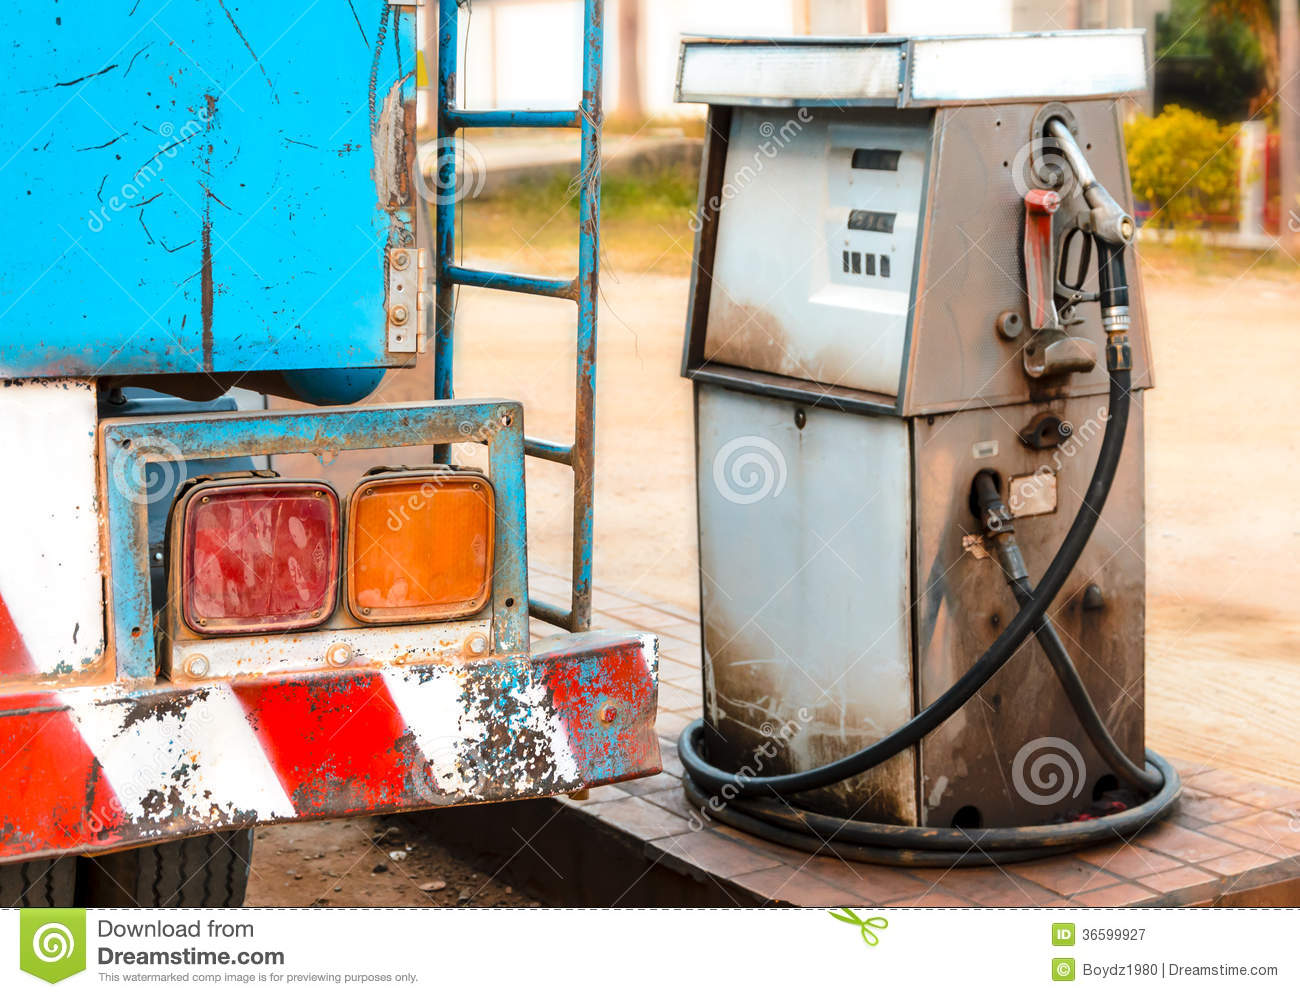 Diesel Fuel Station >> Gas station pump stock image. Image of nozzle, inflation ...